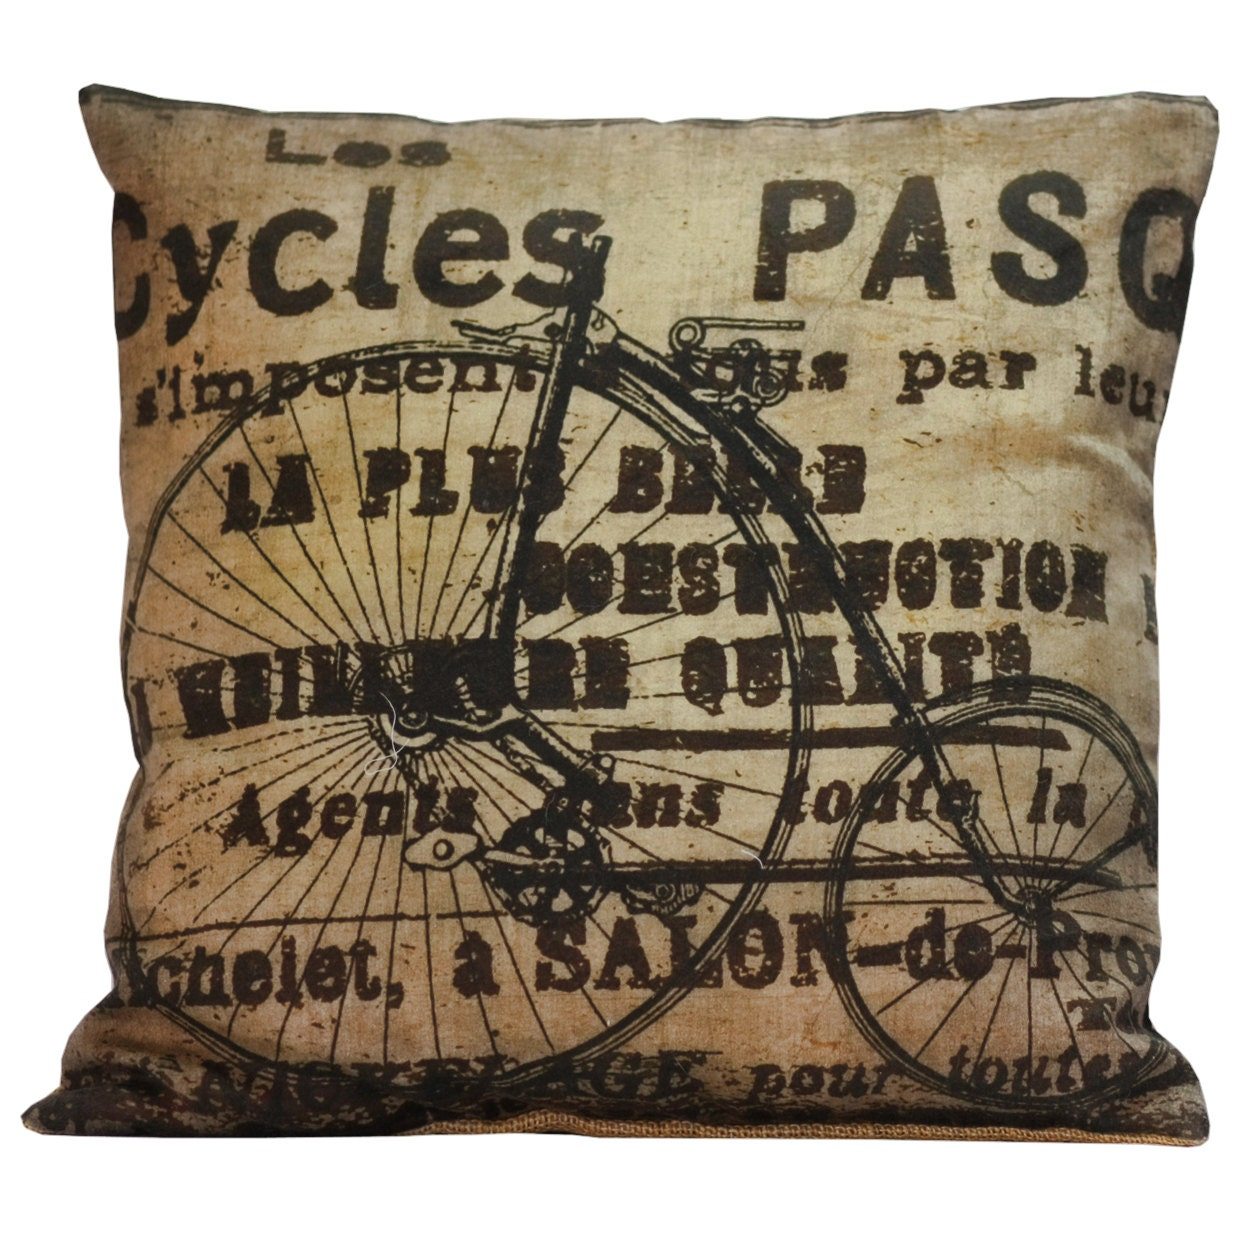 Throw Pillow Cover Vintage French Pillow by ElliottHeathDesigns